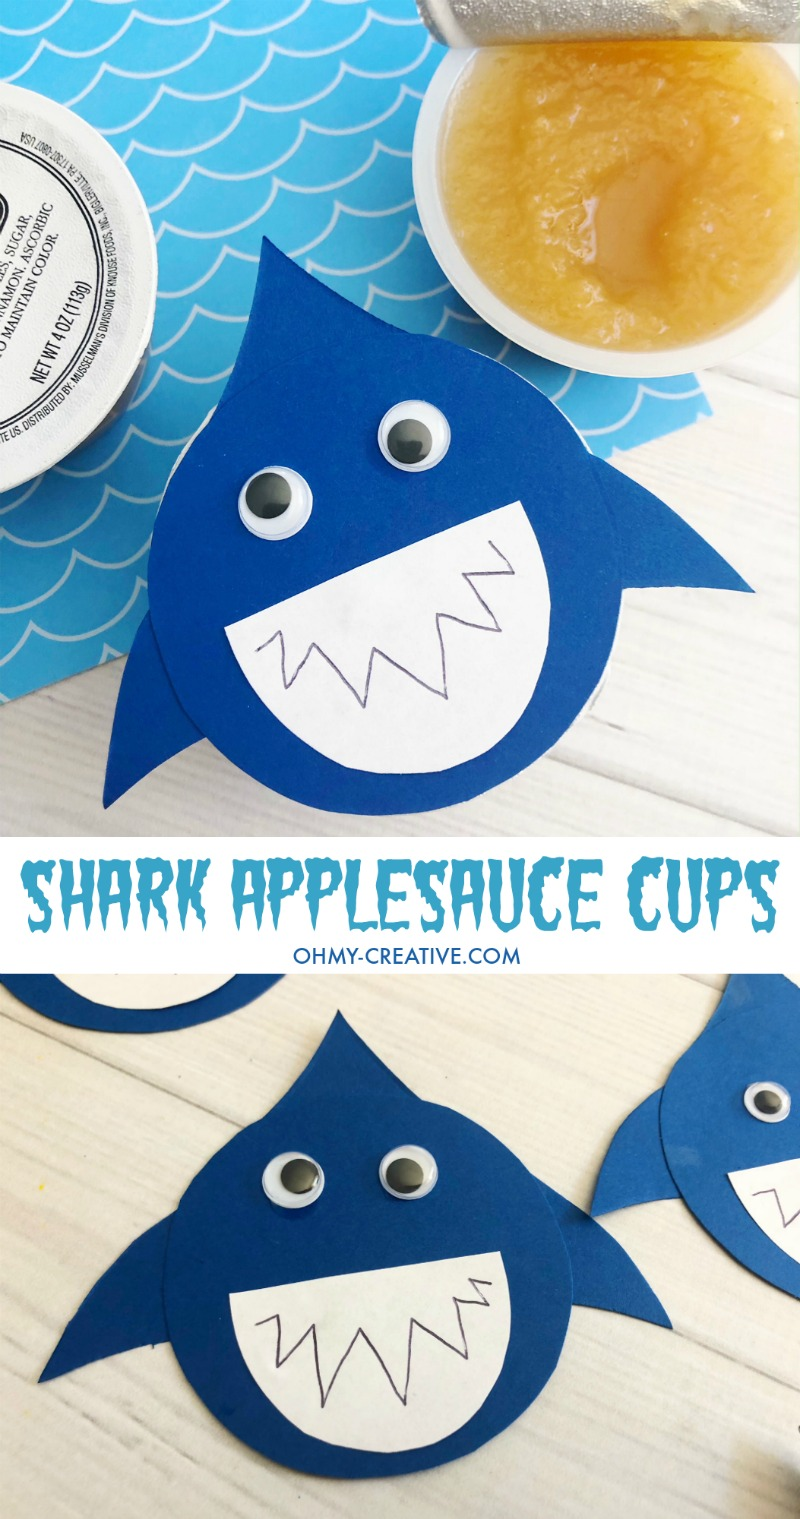 These Shark Applesauce Cups are a fun Shark Party Food or shark craft for kids. Great for Shark Week too! Shark Party | Shark Craft | Shark Food | Applesauce Cups | Applesauce | Shark Party Ideas #sharkweek #sharkparty #sharkpartyfood #applesaucecups